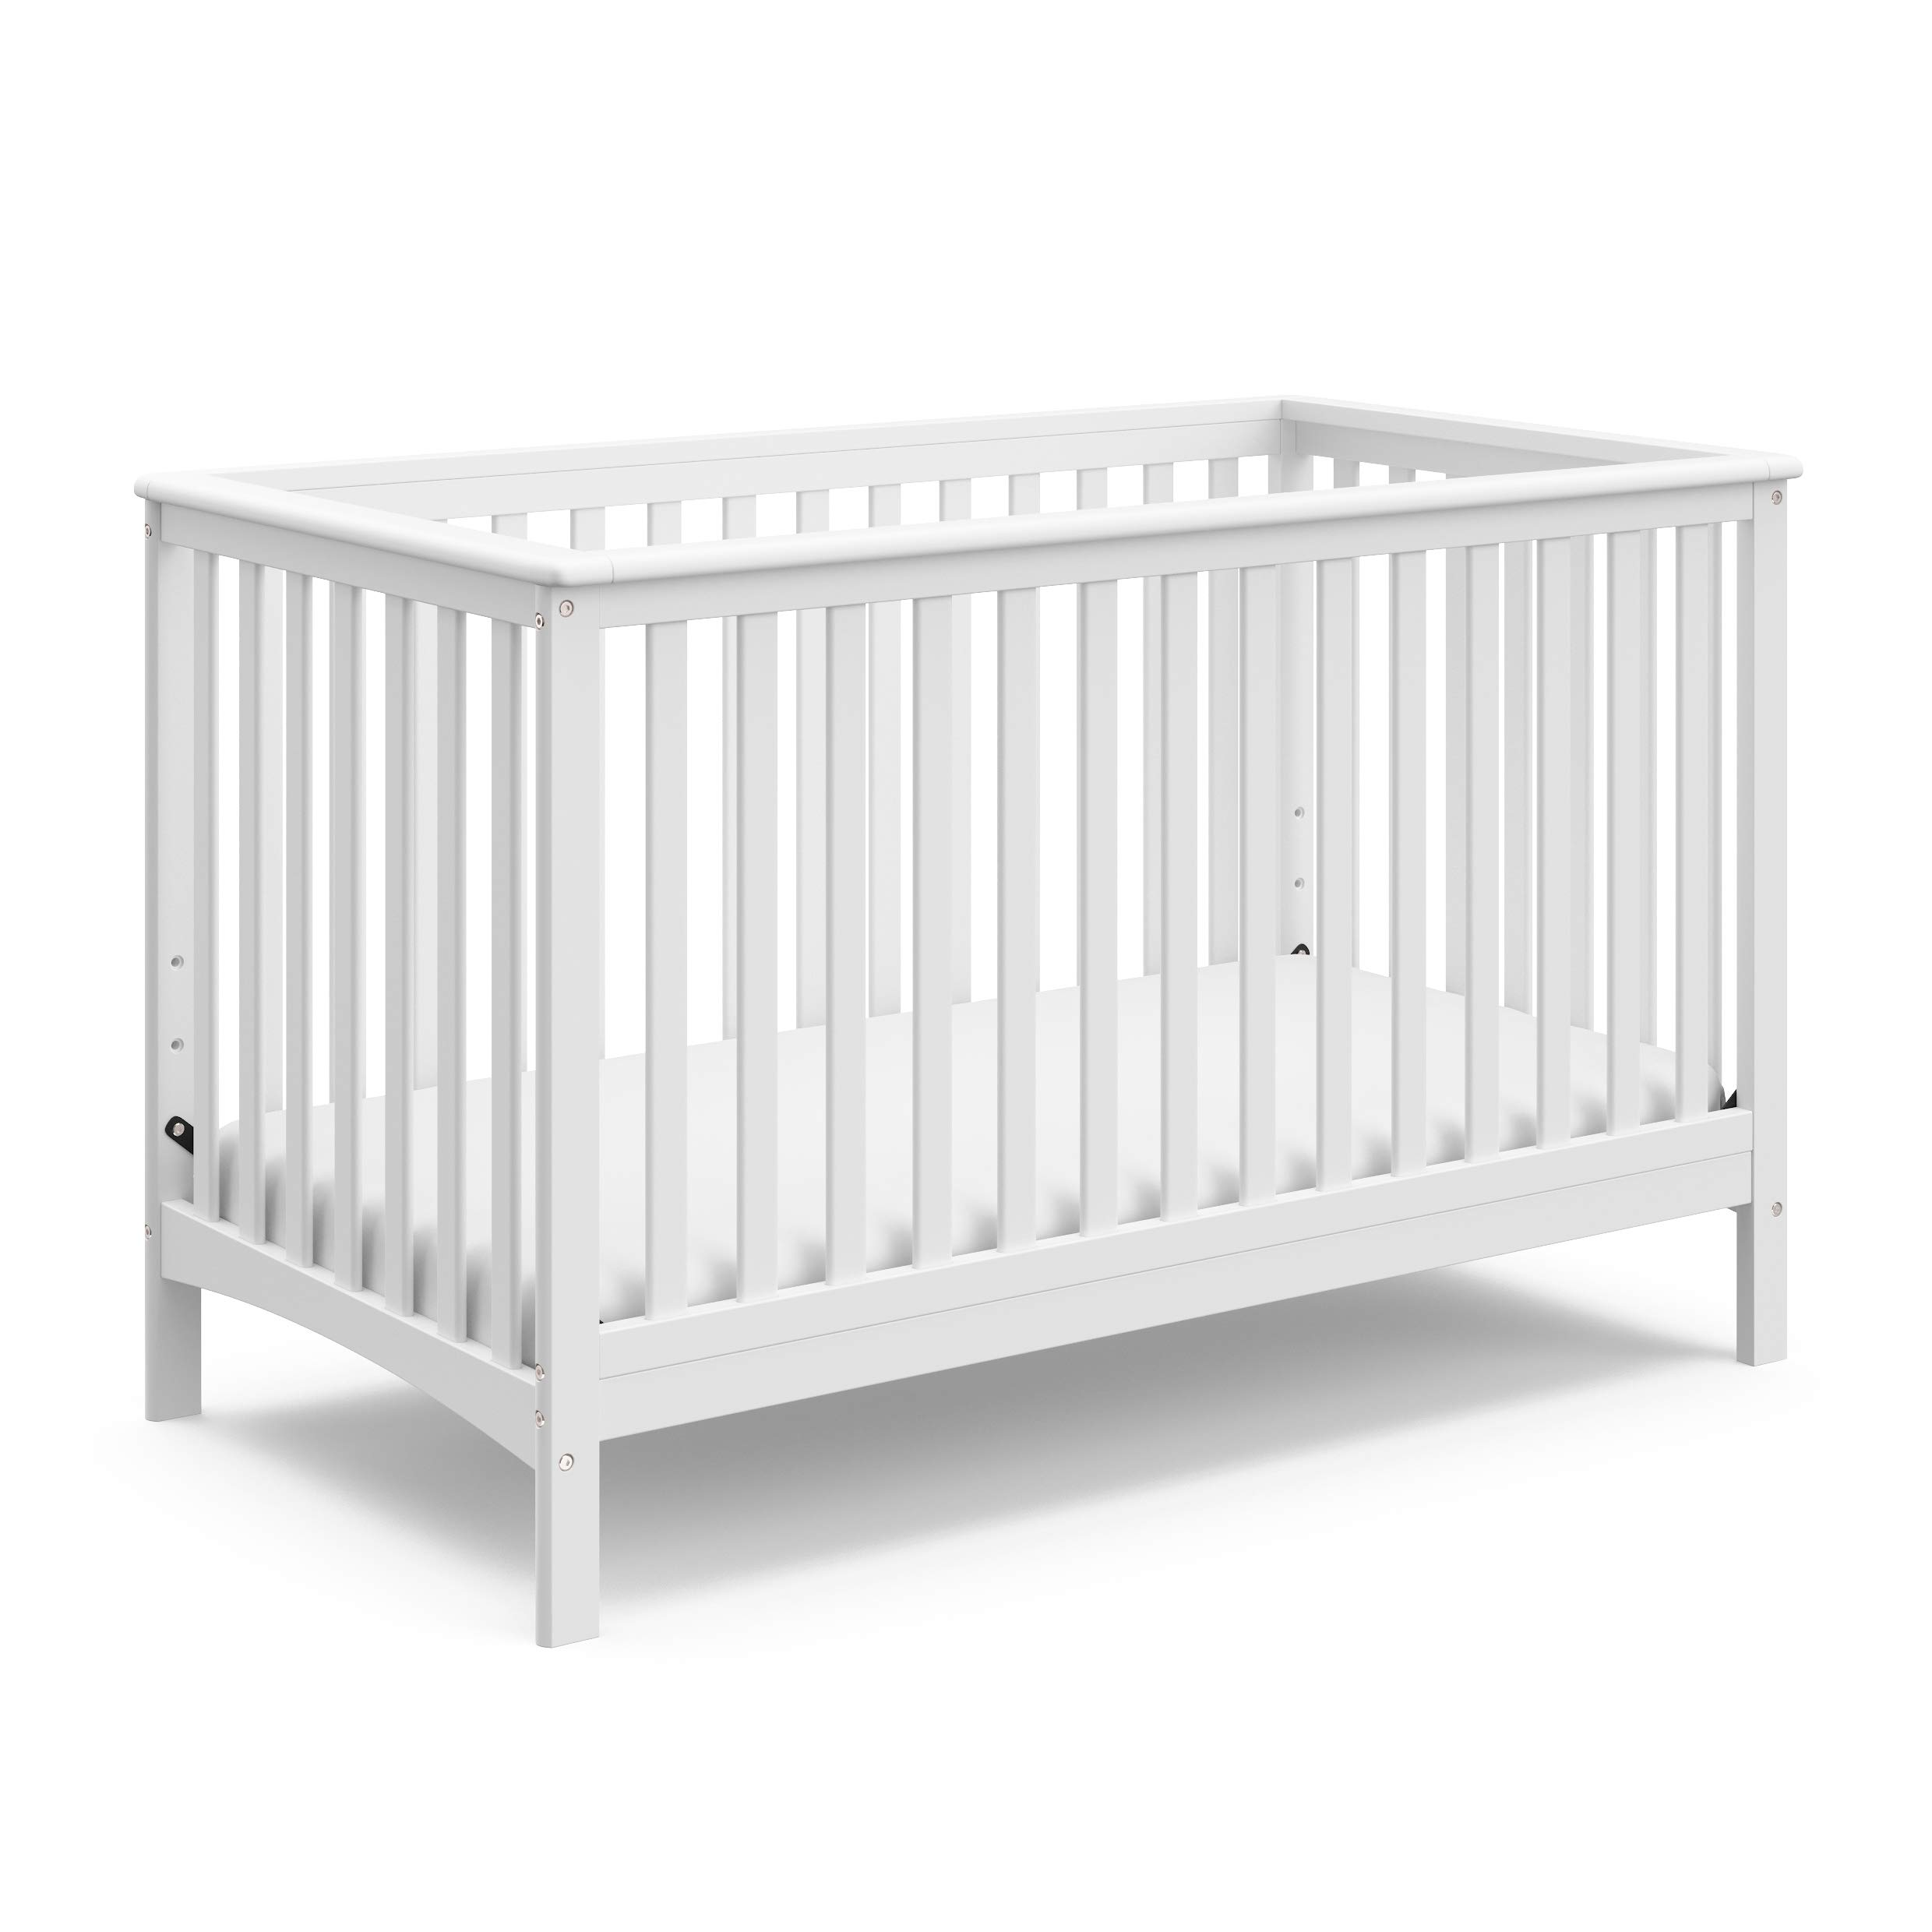 Storkcraft Hillcrest Fixed Side Convertible Crib, White, Easily Converts to Toddler Bed Day Bed or Full Bed, Three Position Adjustable Height Mattress, Some Assembly Required (Mattress Not Included) by Storkcraft